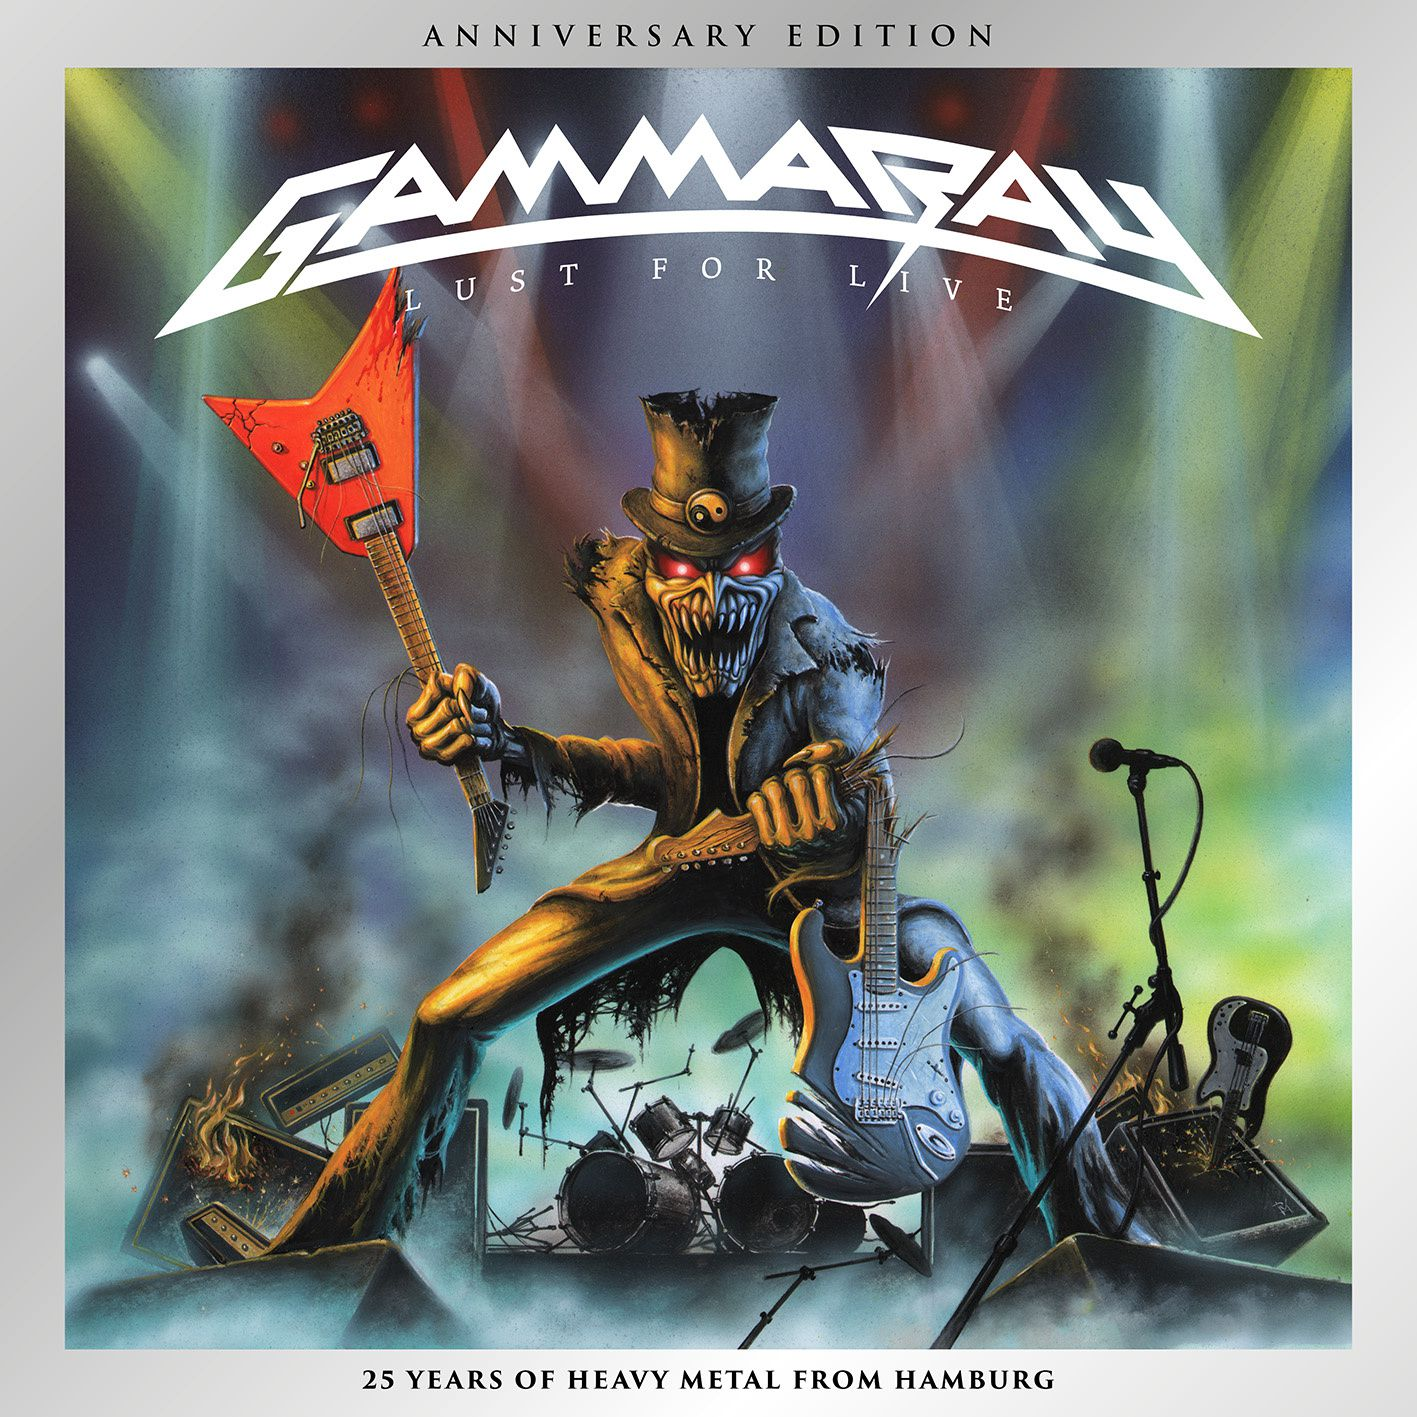 """CD review GAMMA RAY """"Lust For Live"""" (Anniversary Edition)"""